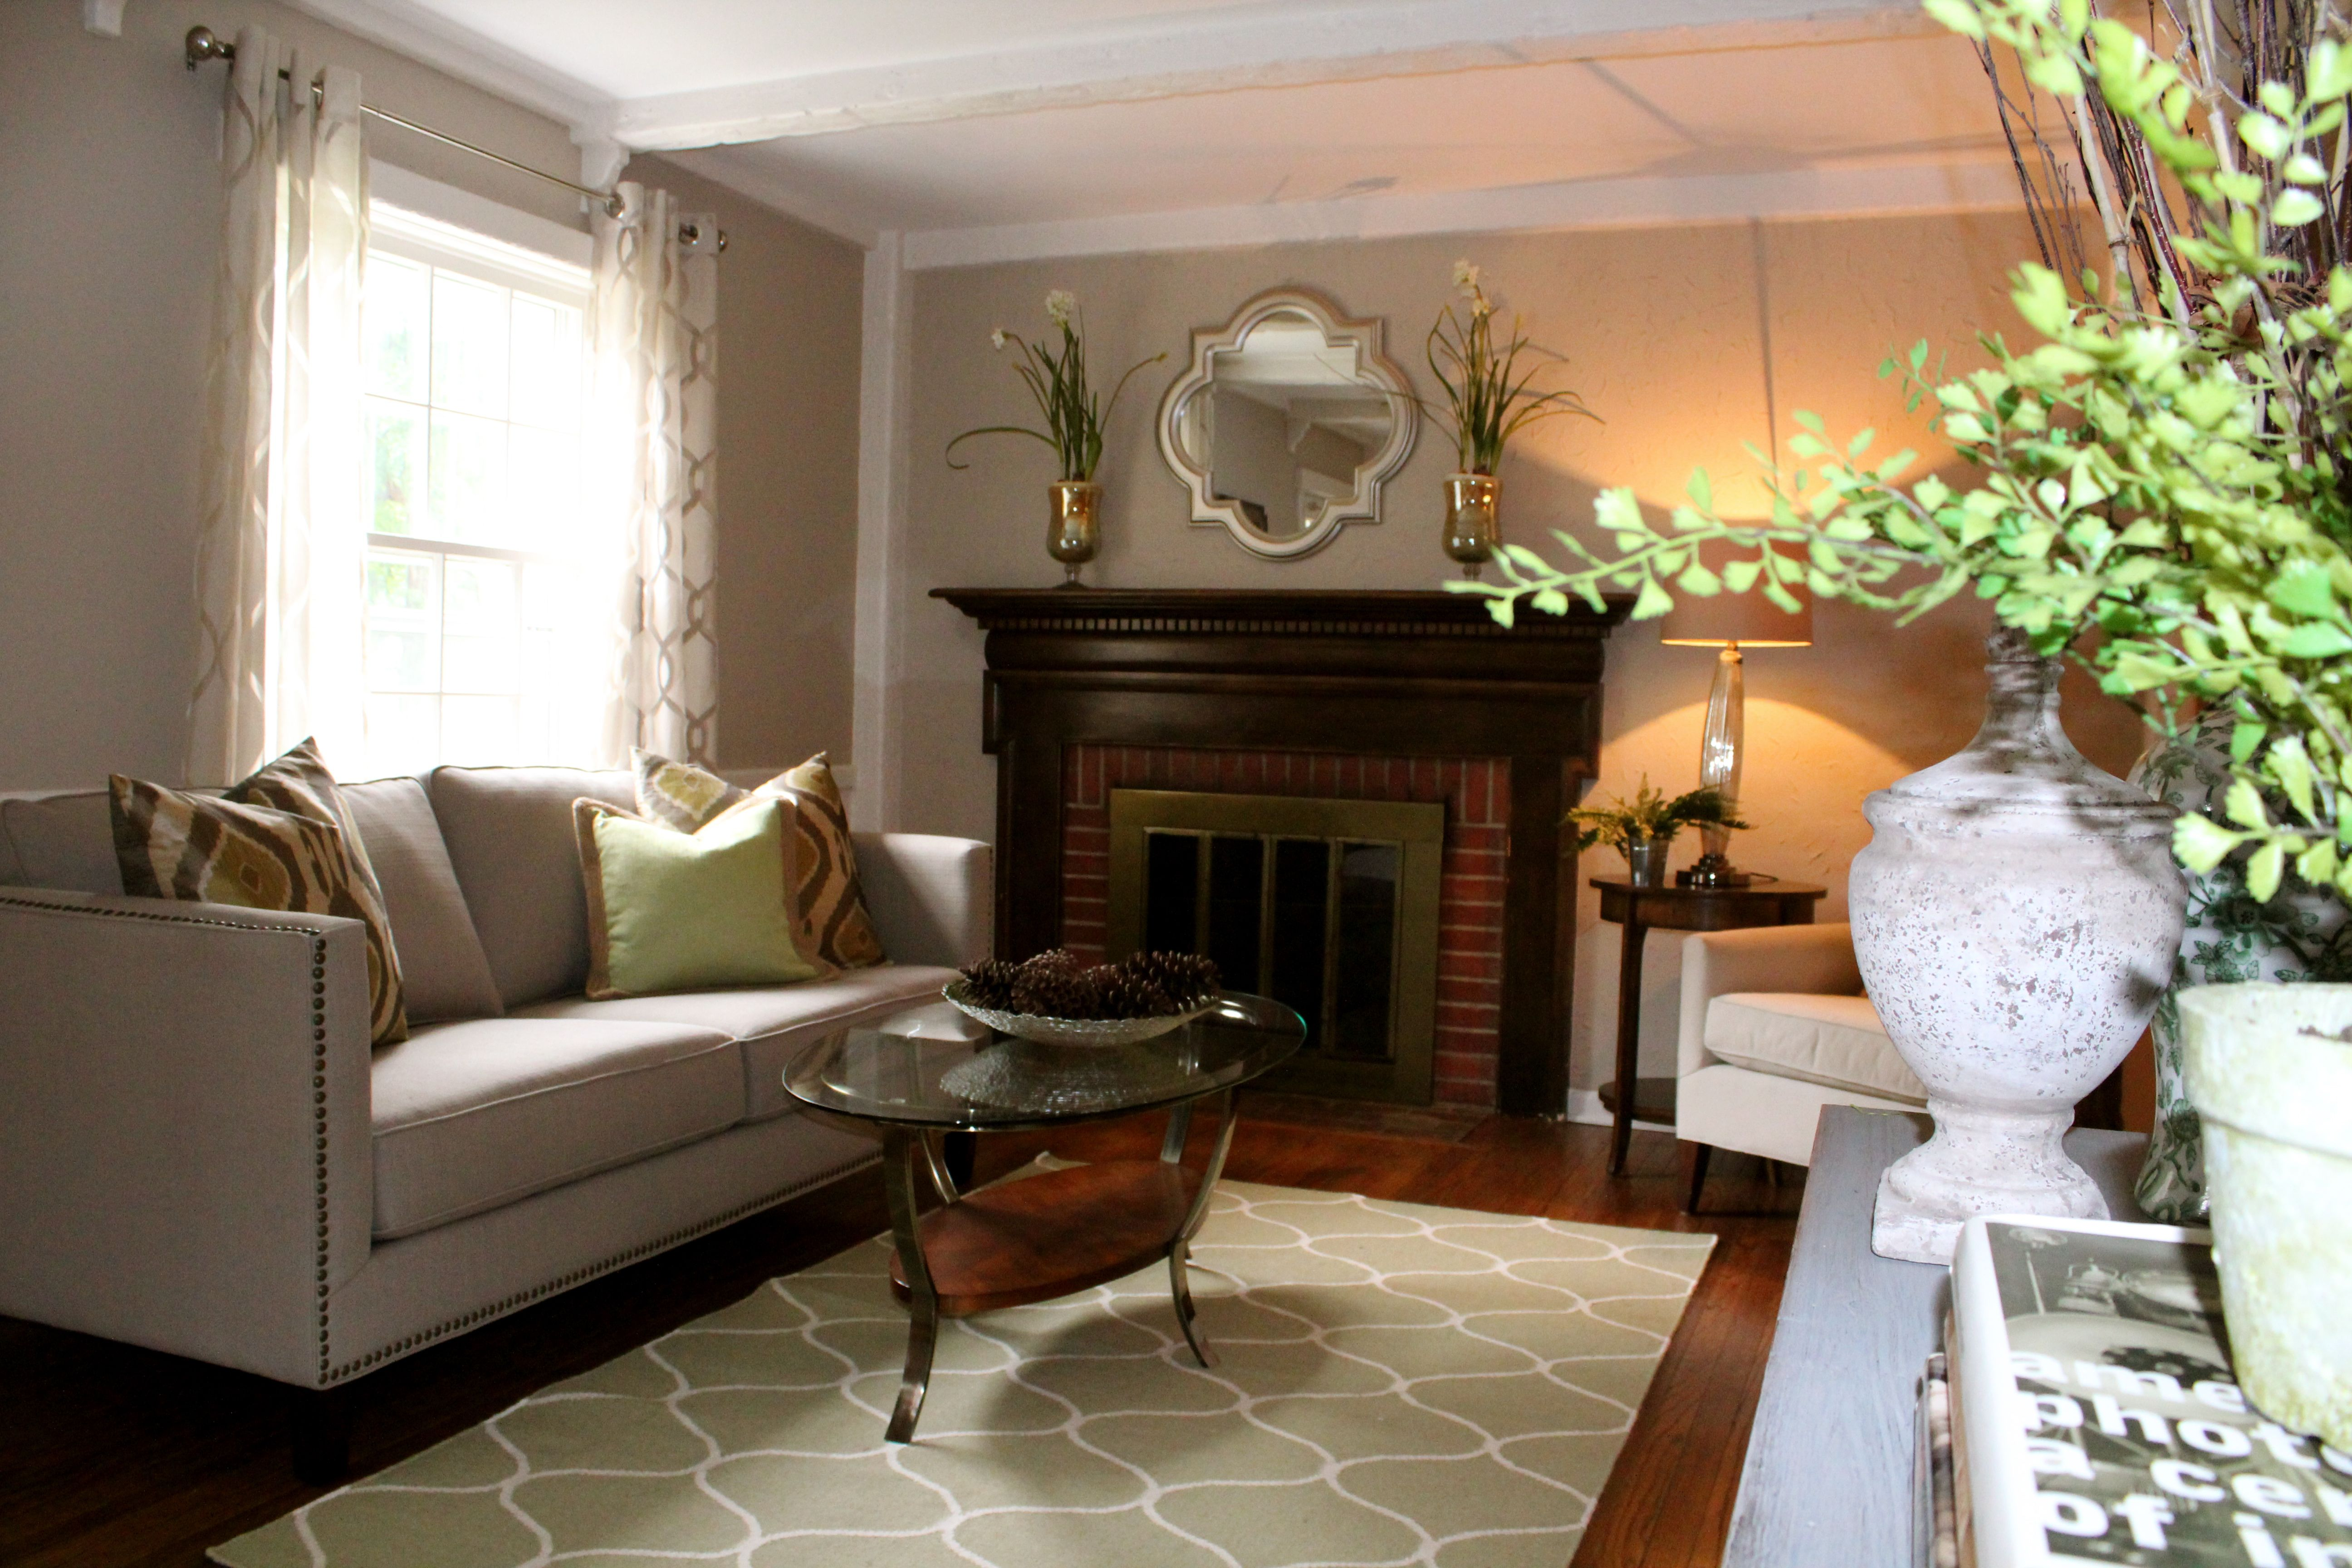 Home Staging With Geometric Patterns Off Center Fireplace